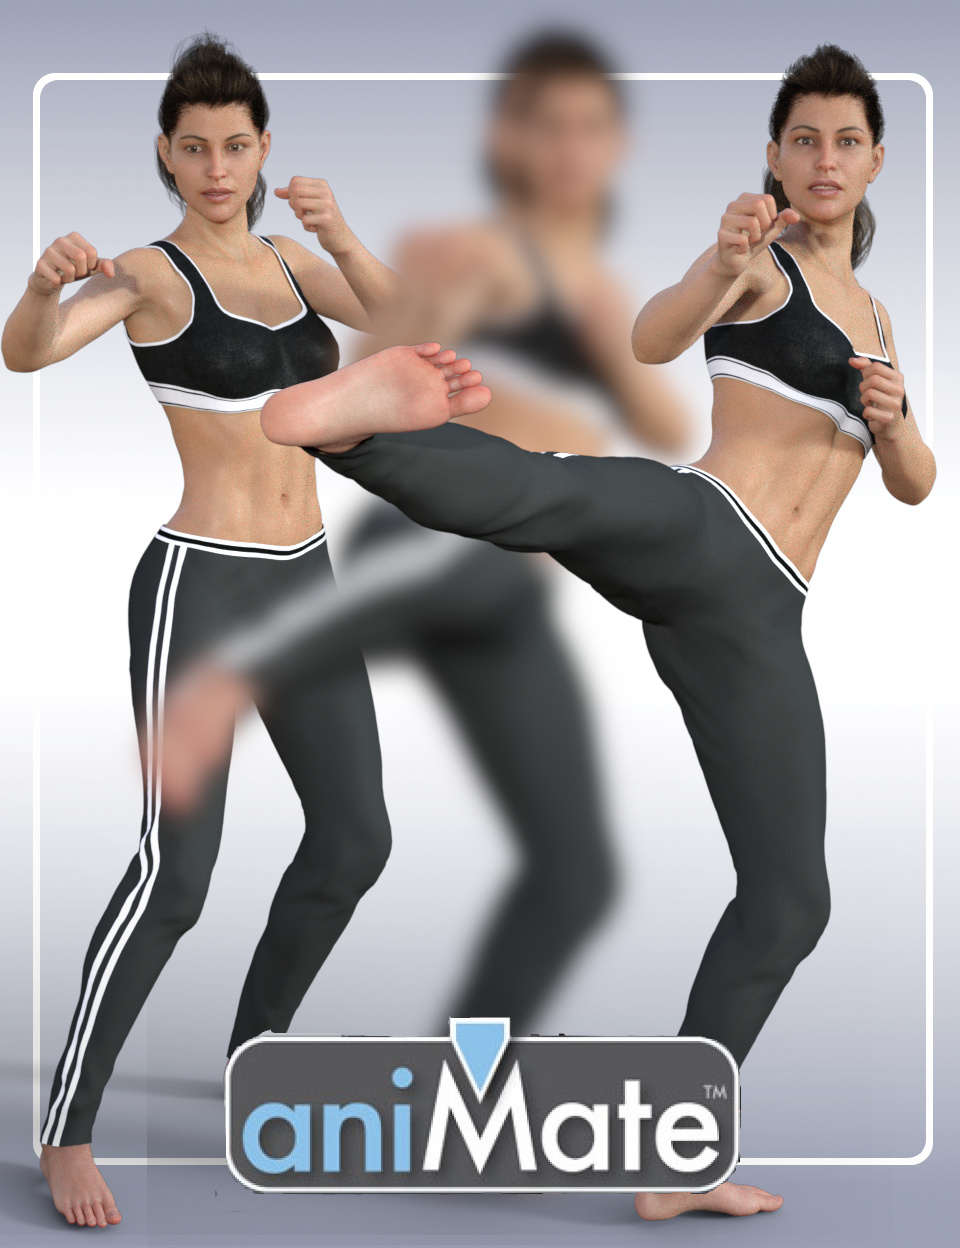 aniMate Martial Arts Kicks for Victoria 8 by: GoFigure, 3D Models by Daz 3D